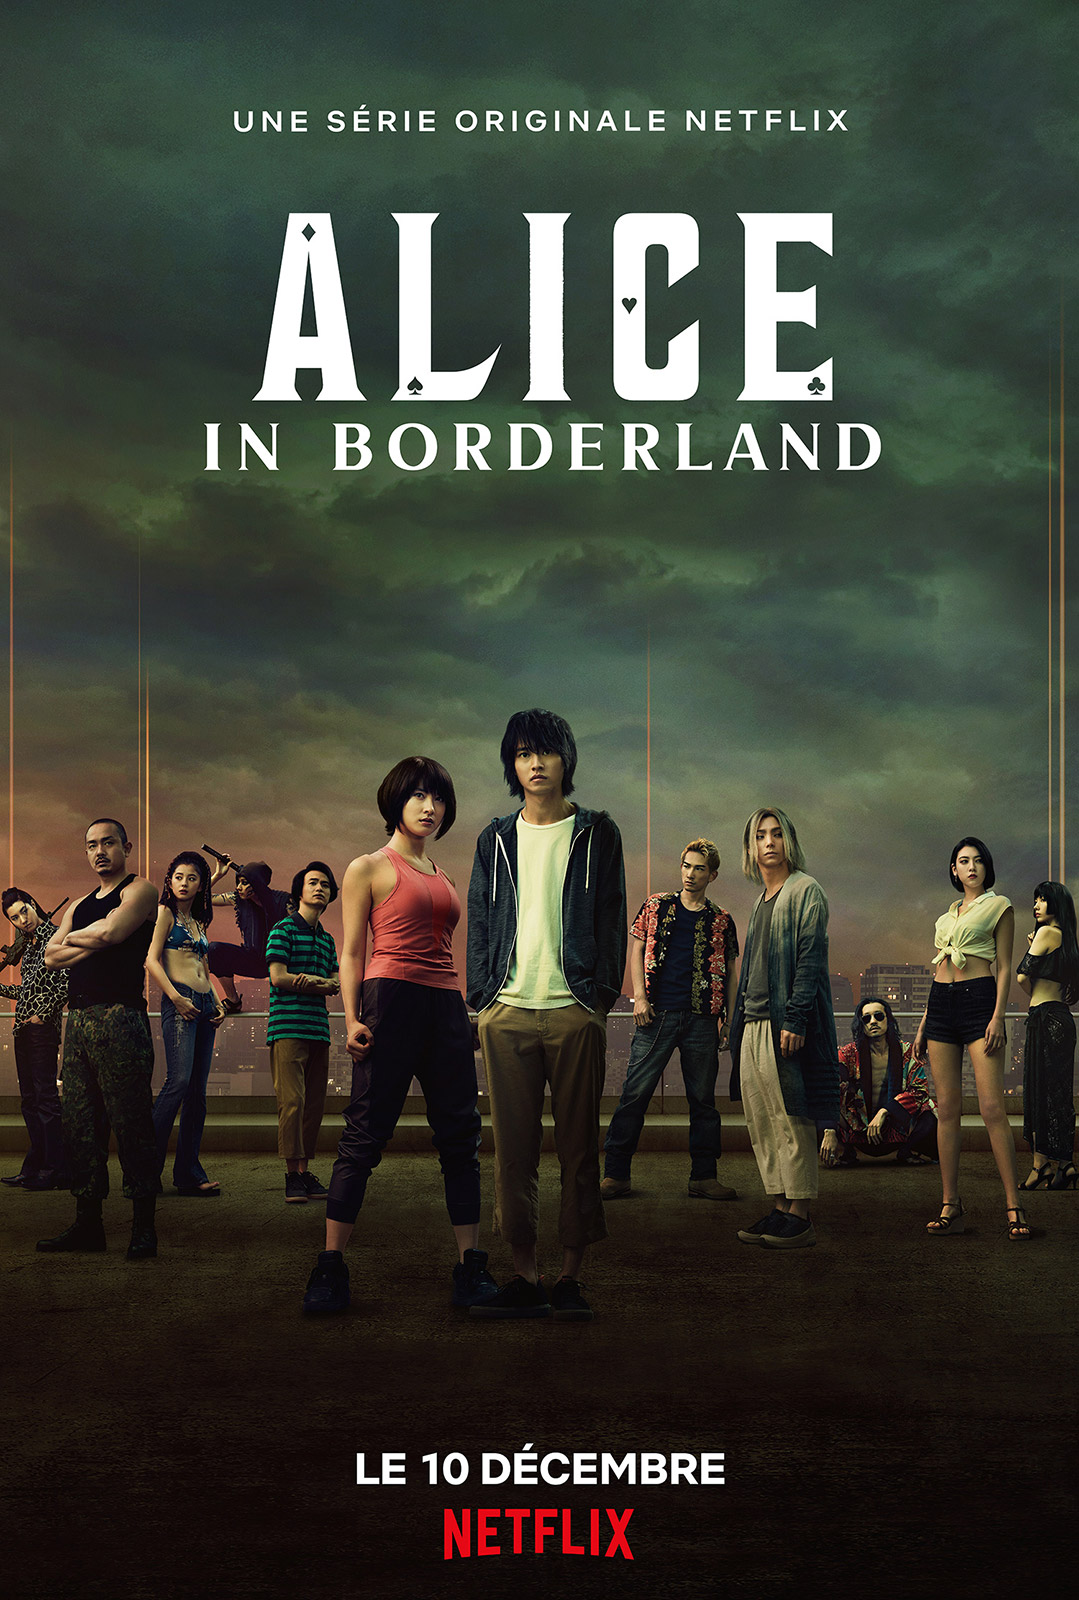 13 - Alice in Borderland